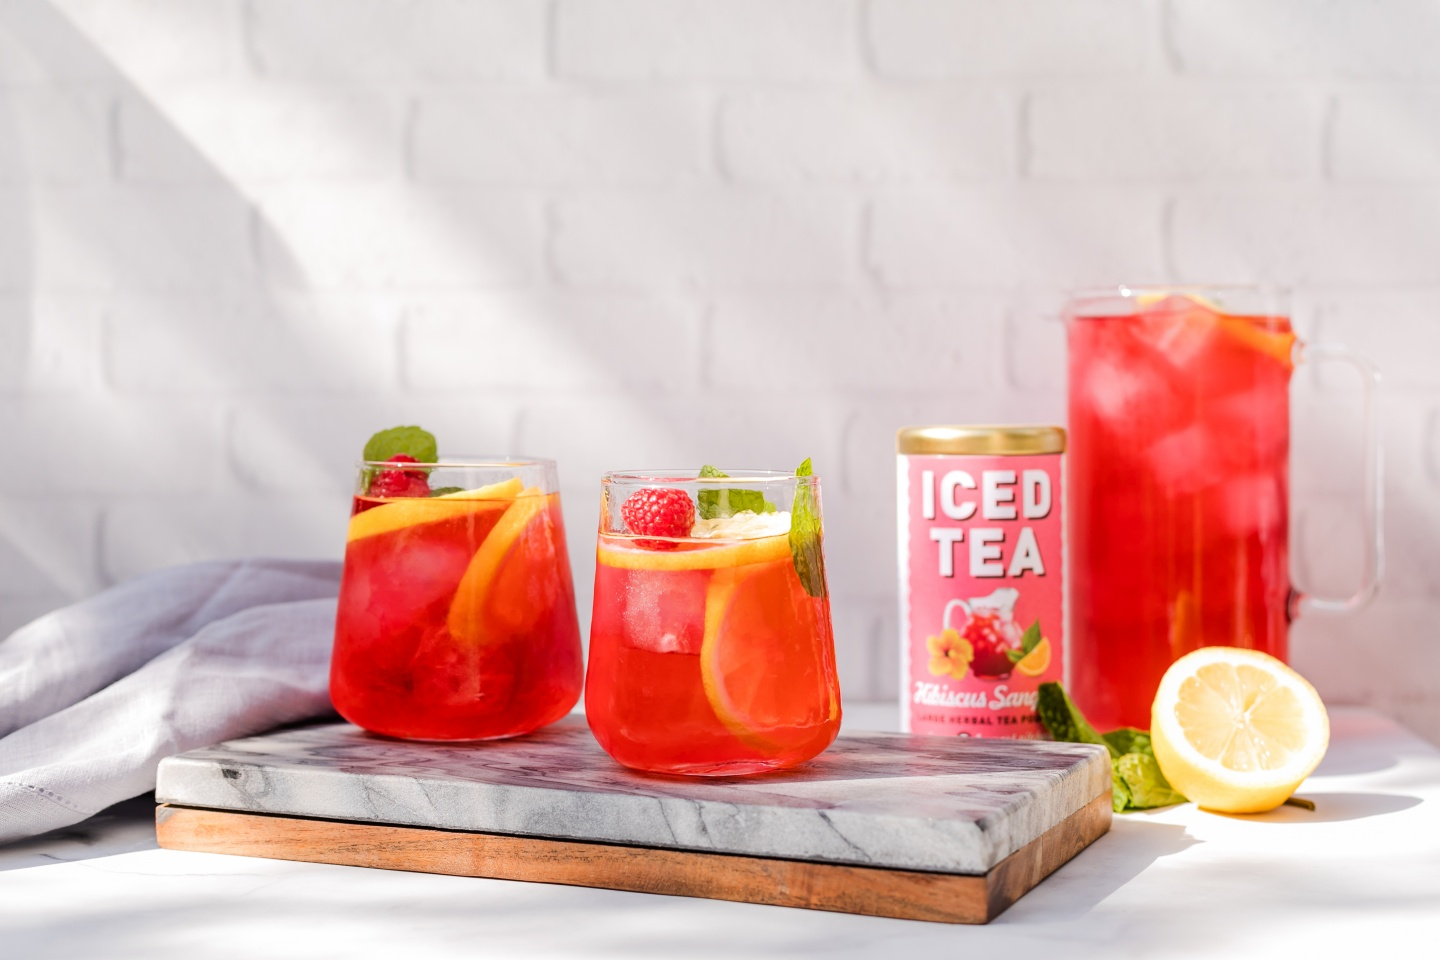 Republic of tea iced hibiscus sangria tea